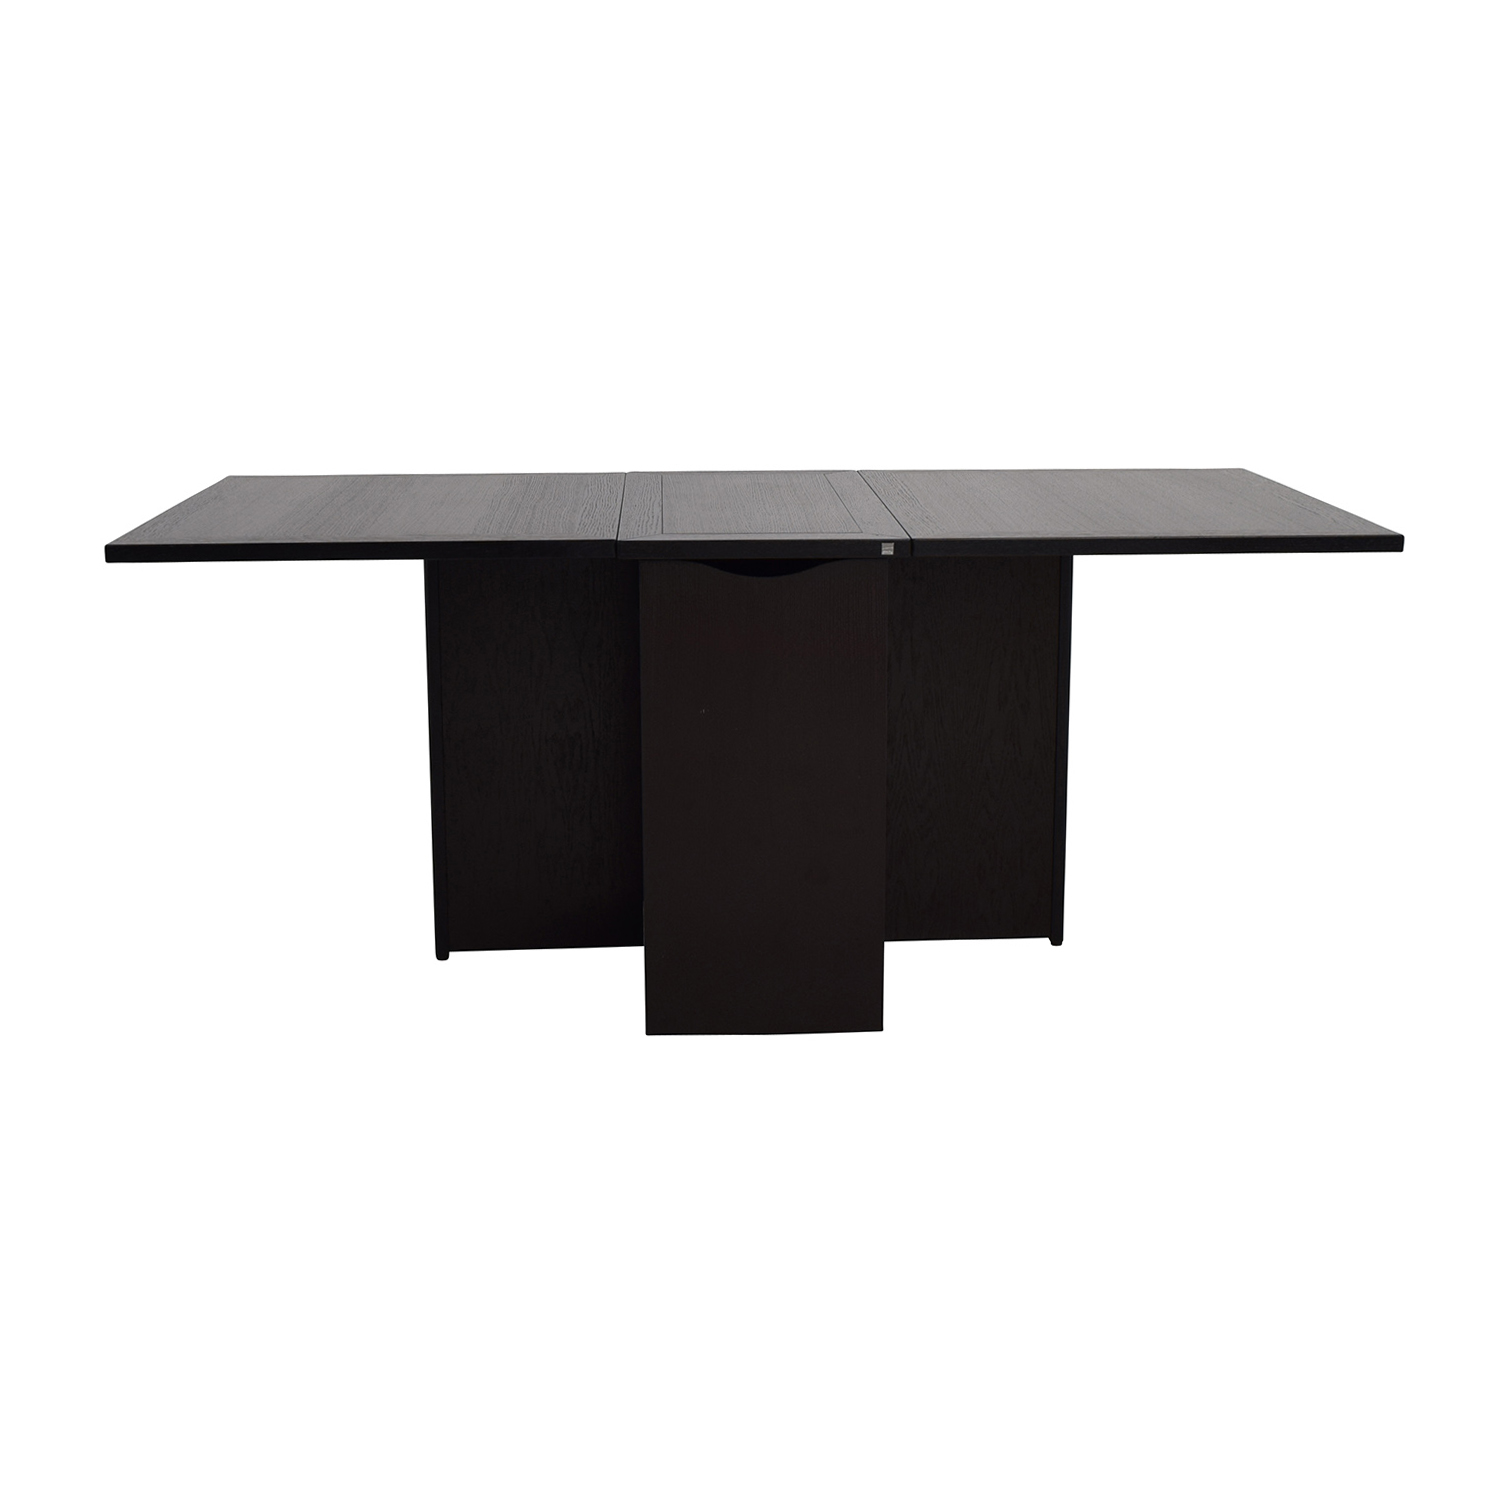 Skovby Scandinavian Design SM101 Multi-Function Table Skovby